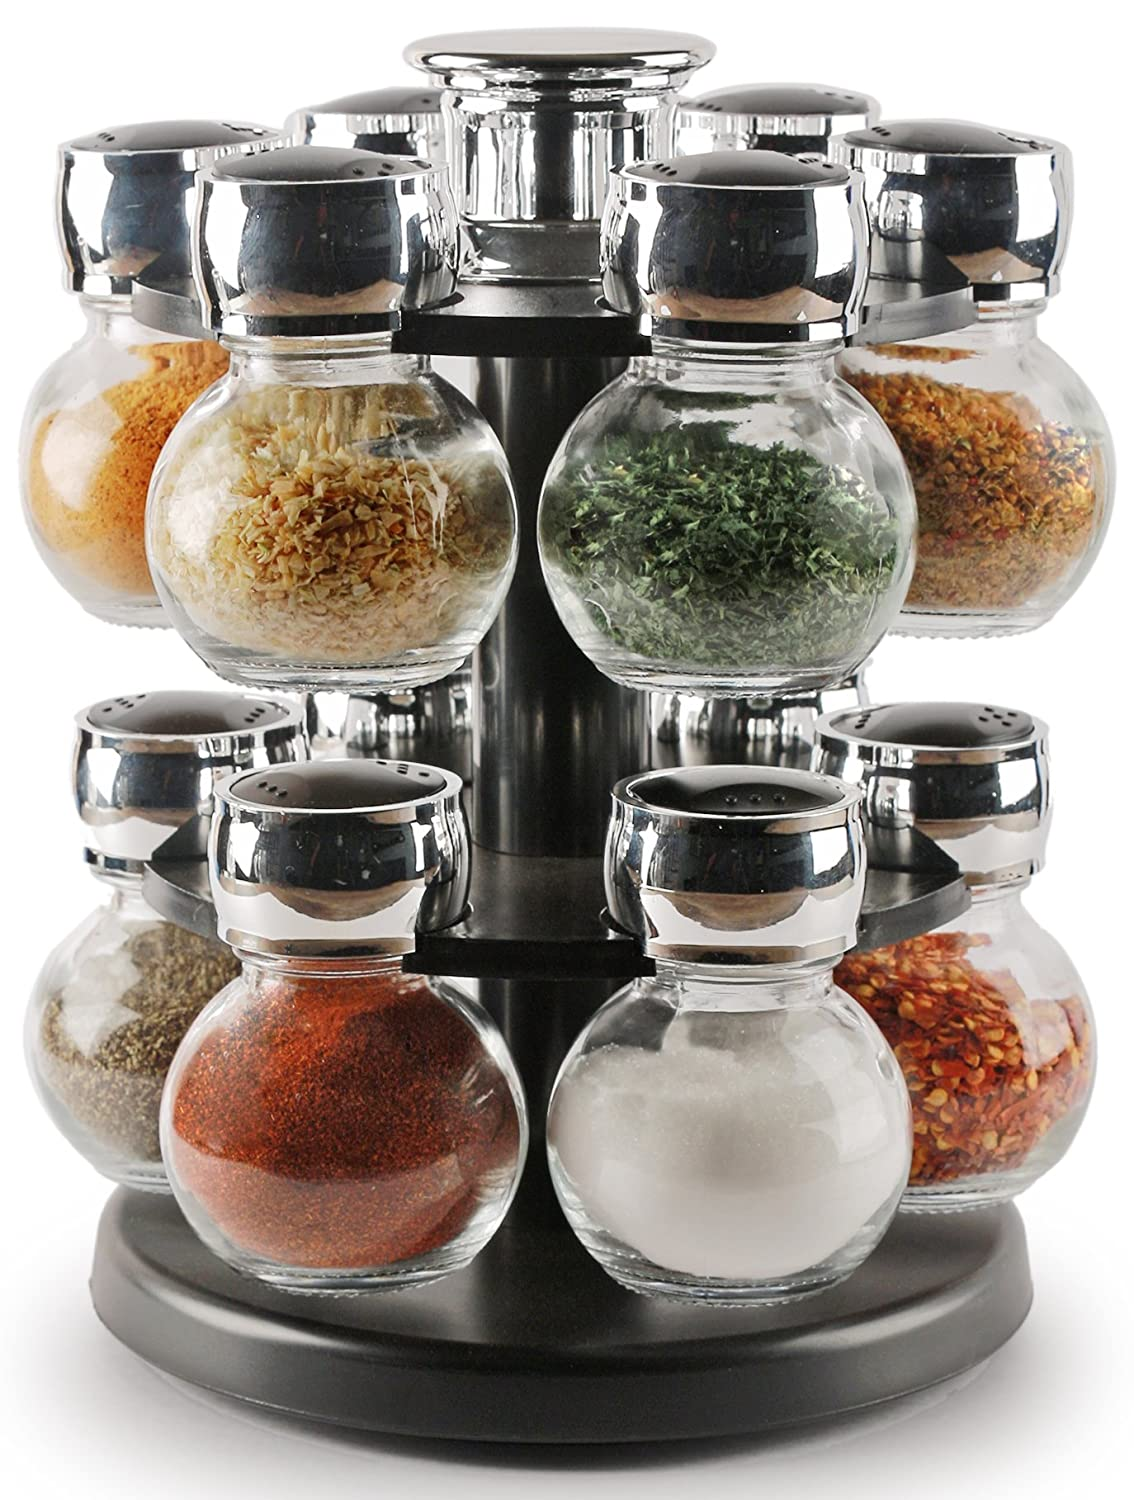 Palais Glassware Tournant Collection, Revolving Countertop Carousel Herb and Spice Rack with 3 Oz Glass Jars (Set of 12 Jars)